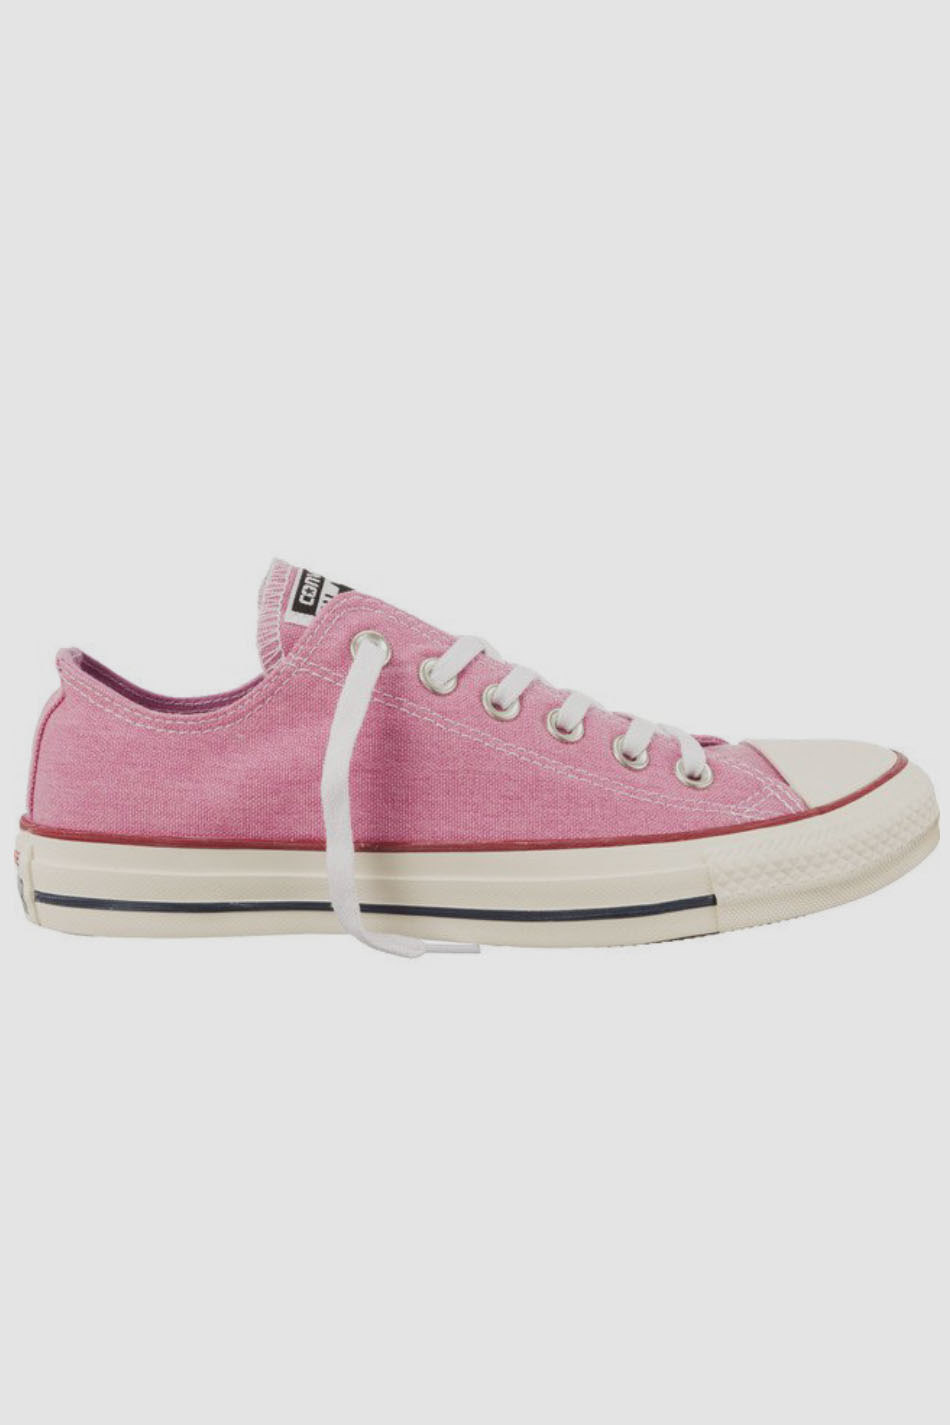 Converse All Star Ox Orchid